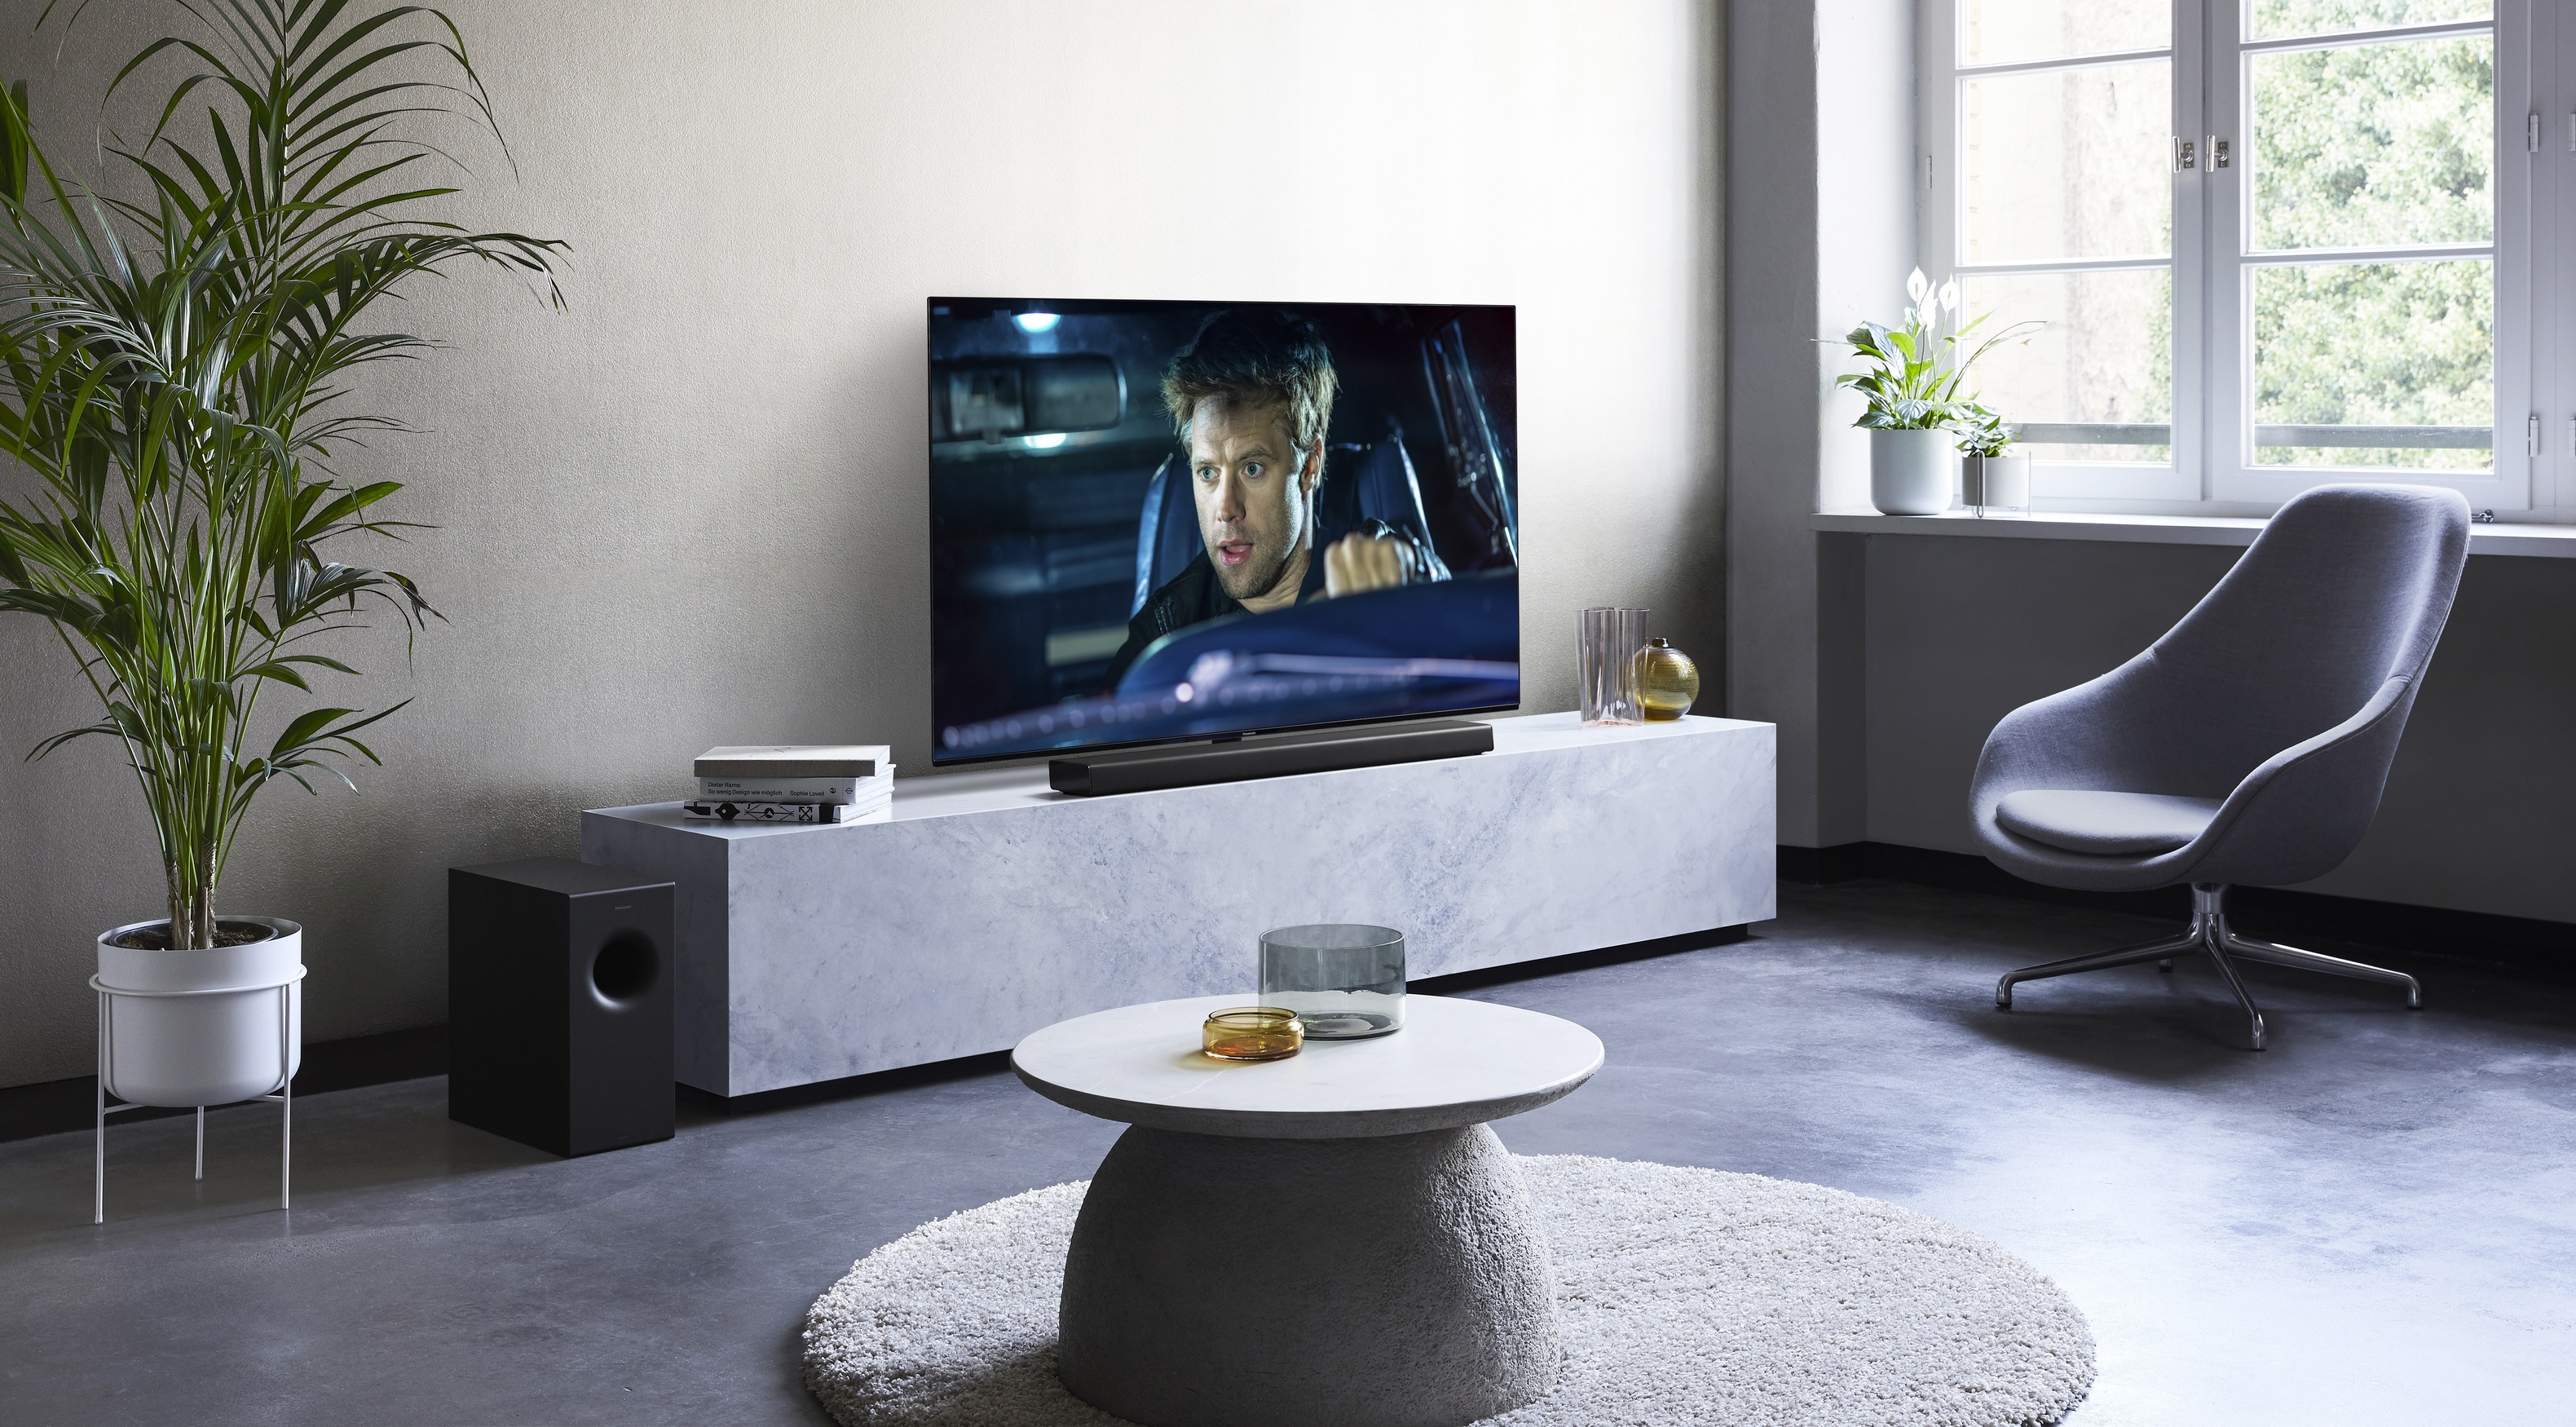 Panasonic Tv Meubel.Panasonic Presenteert Nieuwe Soundbars Sc Htb600 En Sc Htb400